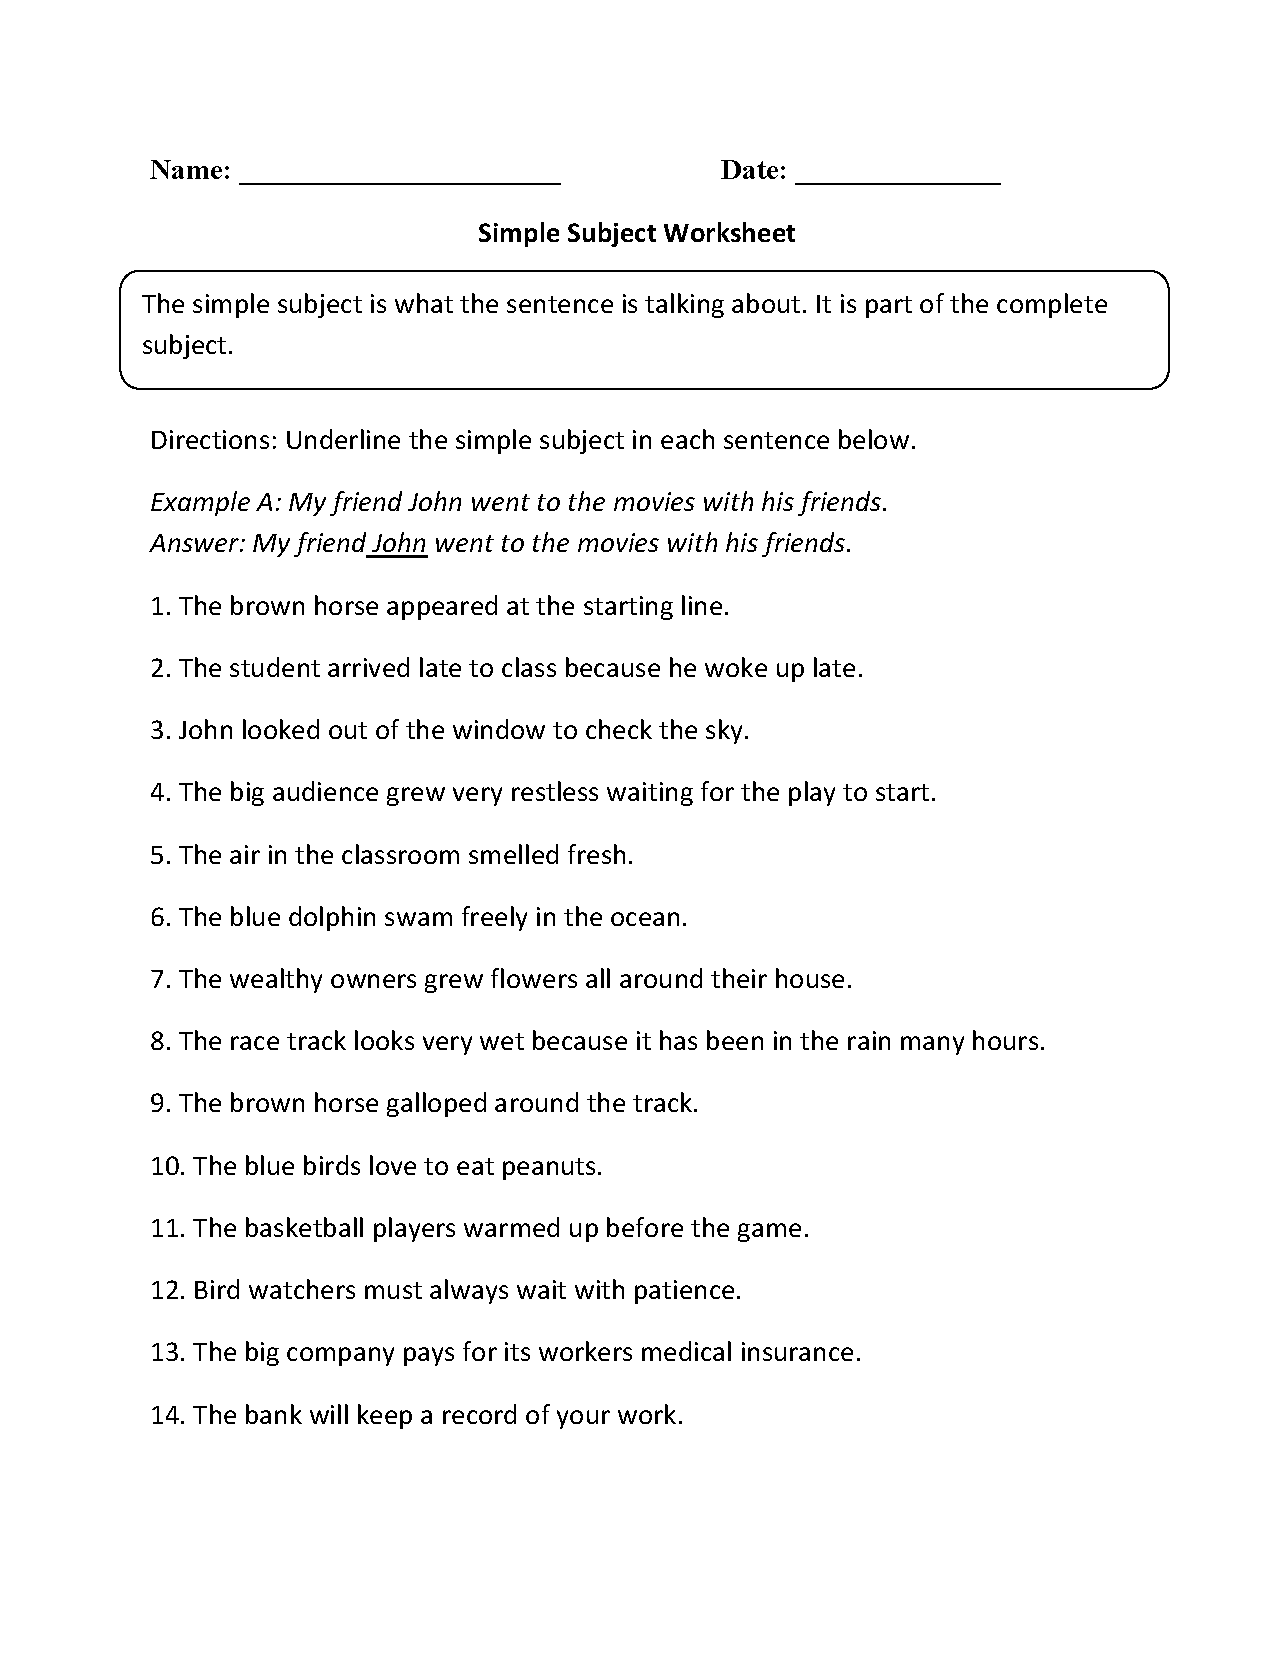 Simple Subject Worksheet | School | Pinterest